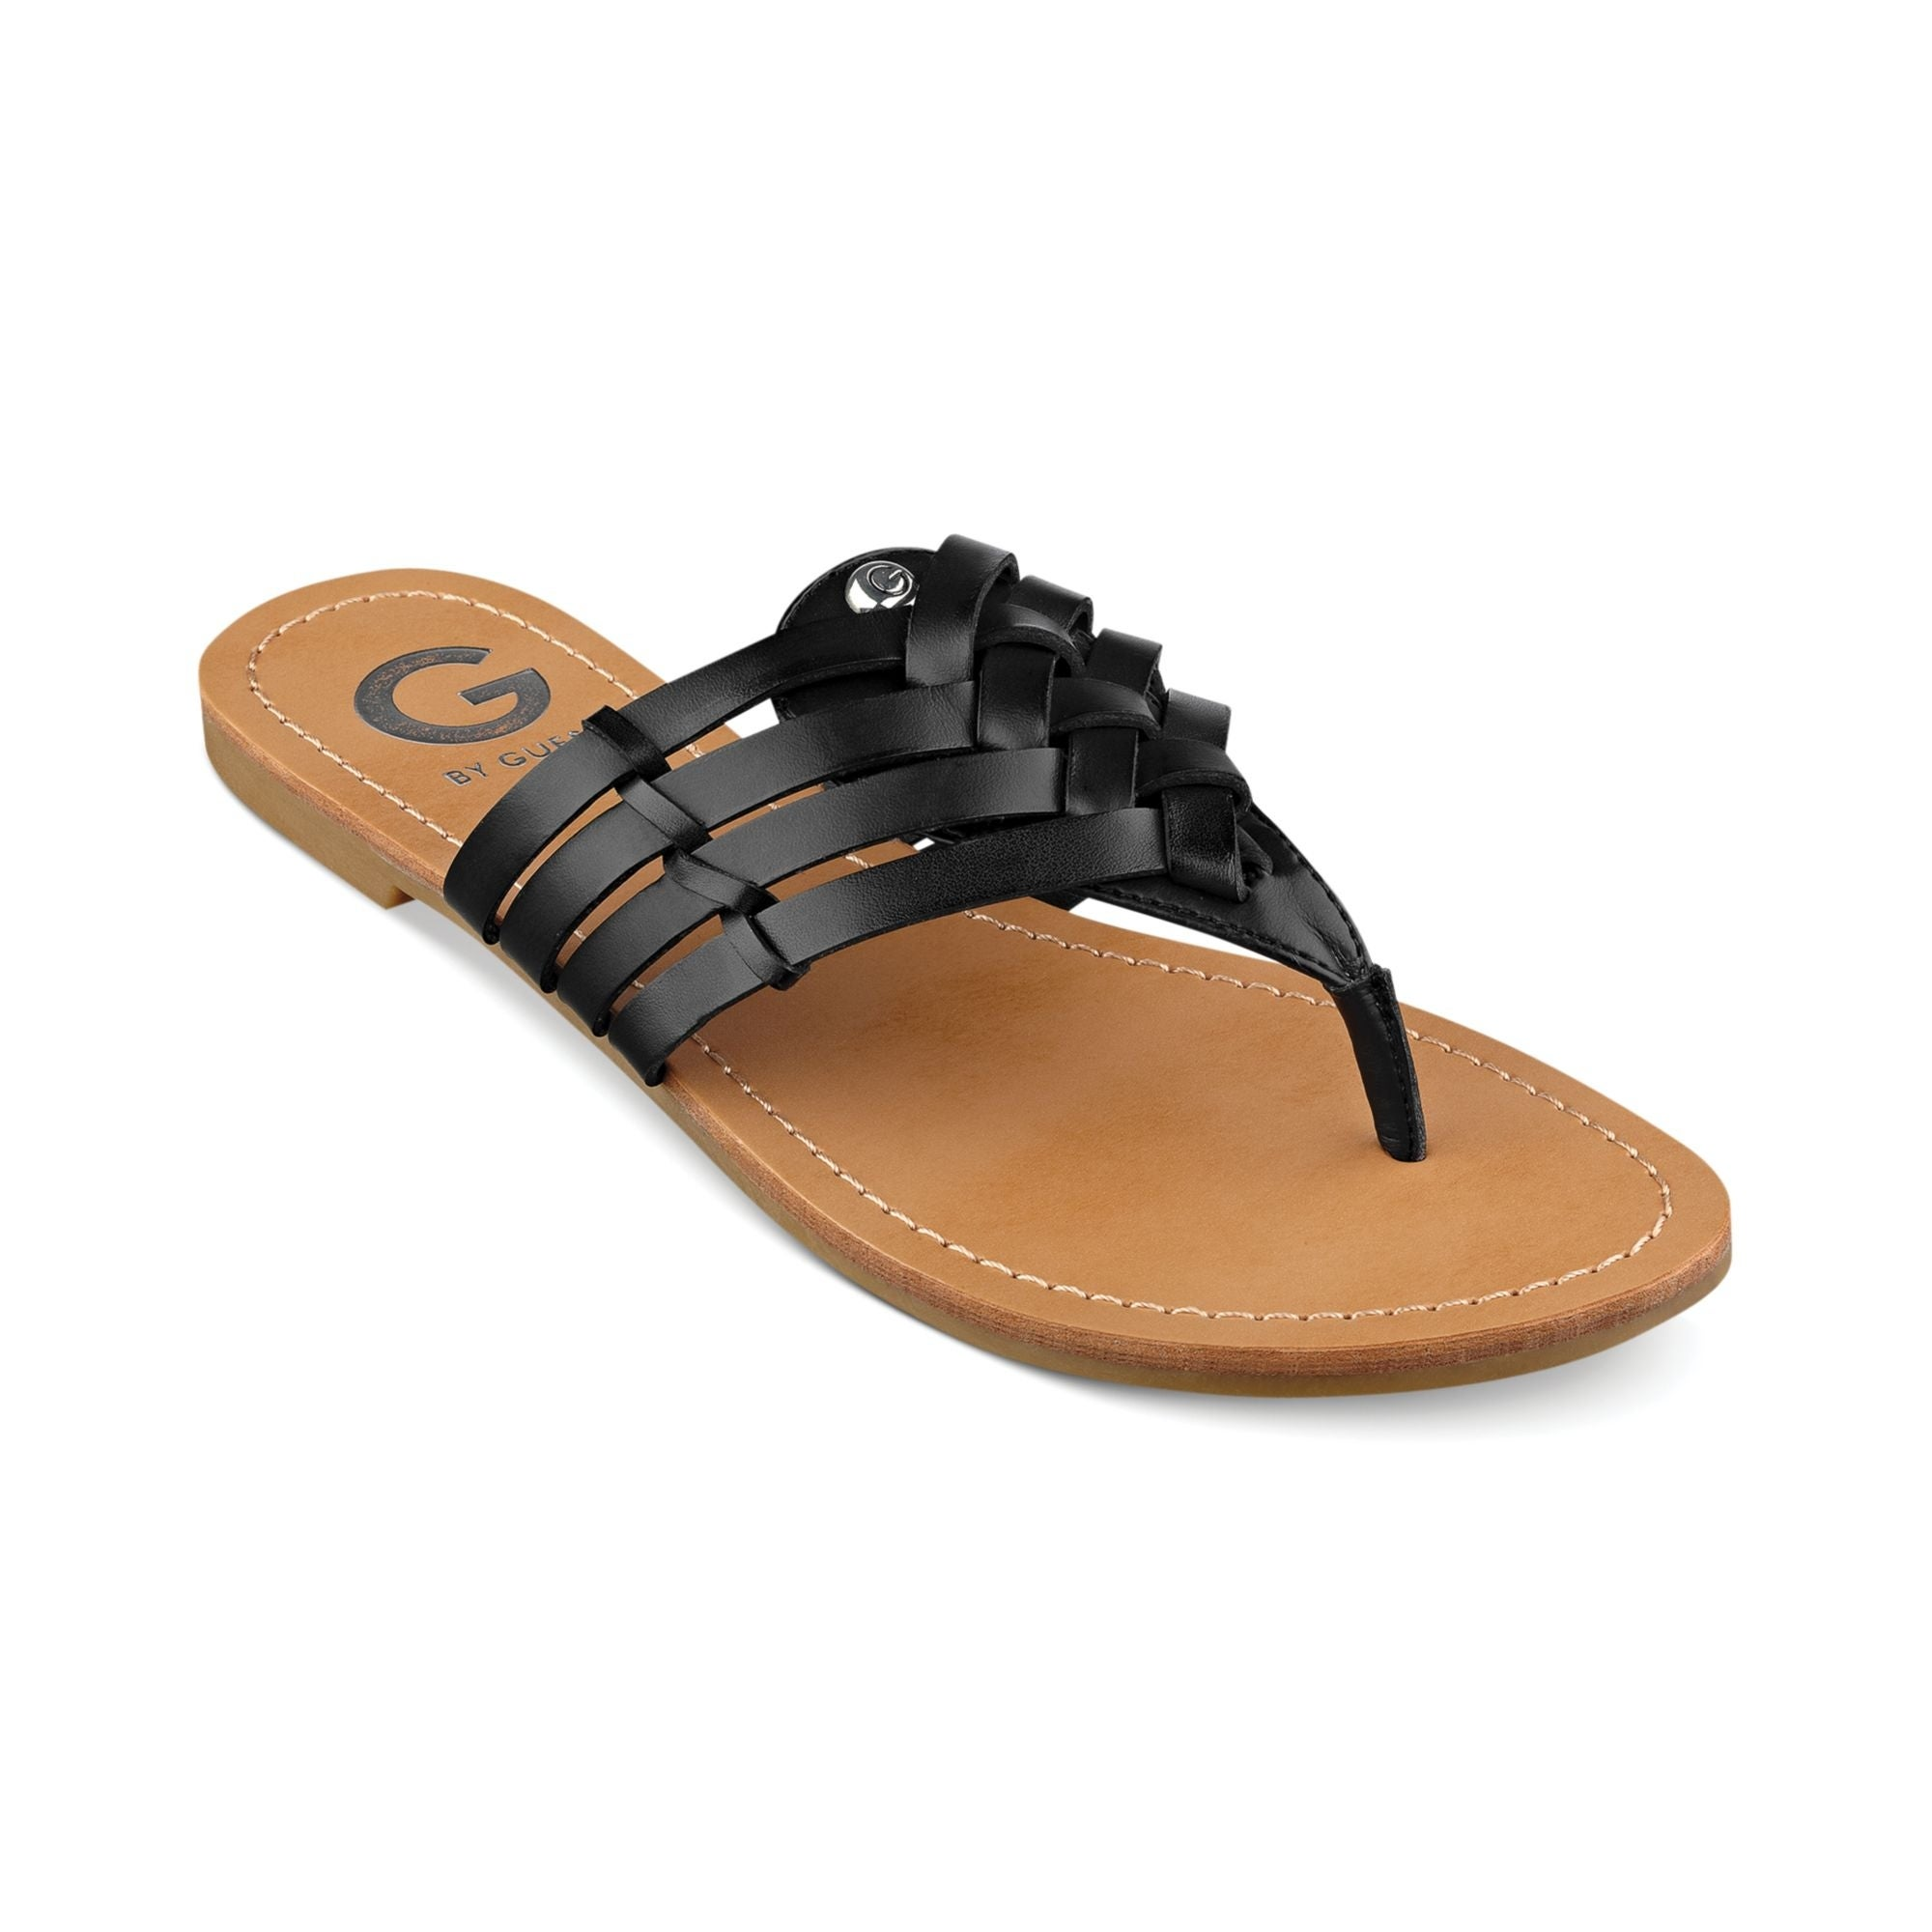 42bf0d2bcec Shop G By Guess Women s Loann Thong Sandals - Free Shipping On Orders Over   45 - Overstock.com - 15426740